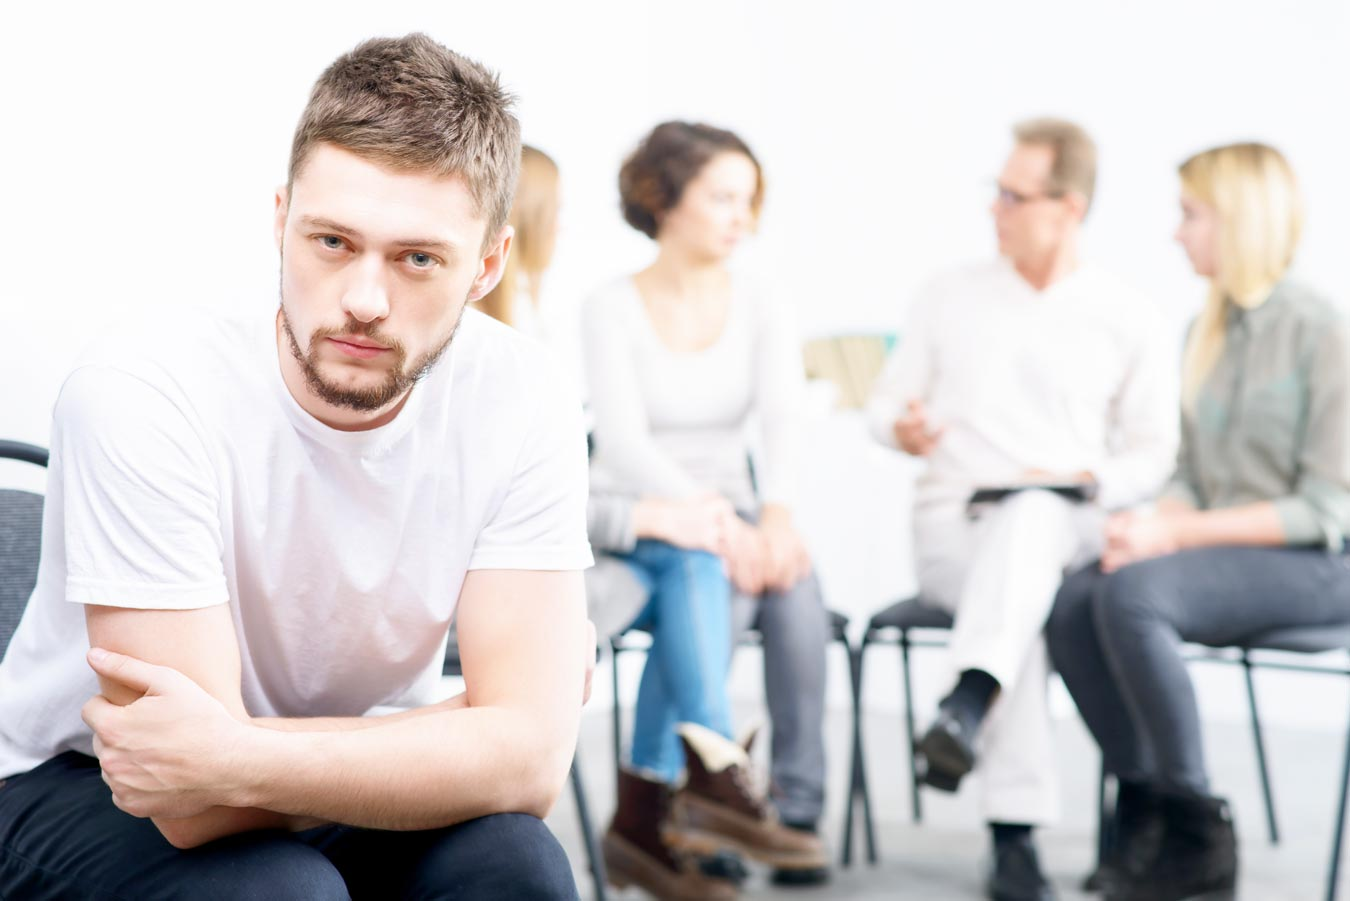 gooden-center-heroin-addiction-photo-of--people-during-psychological-group-therapy-session